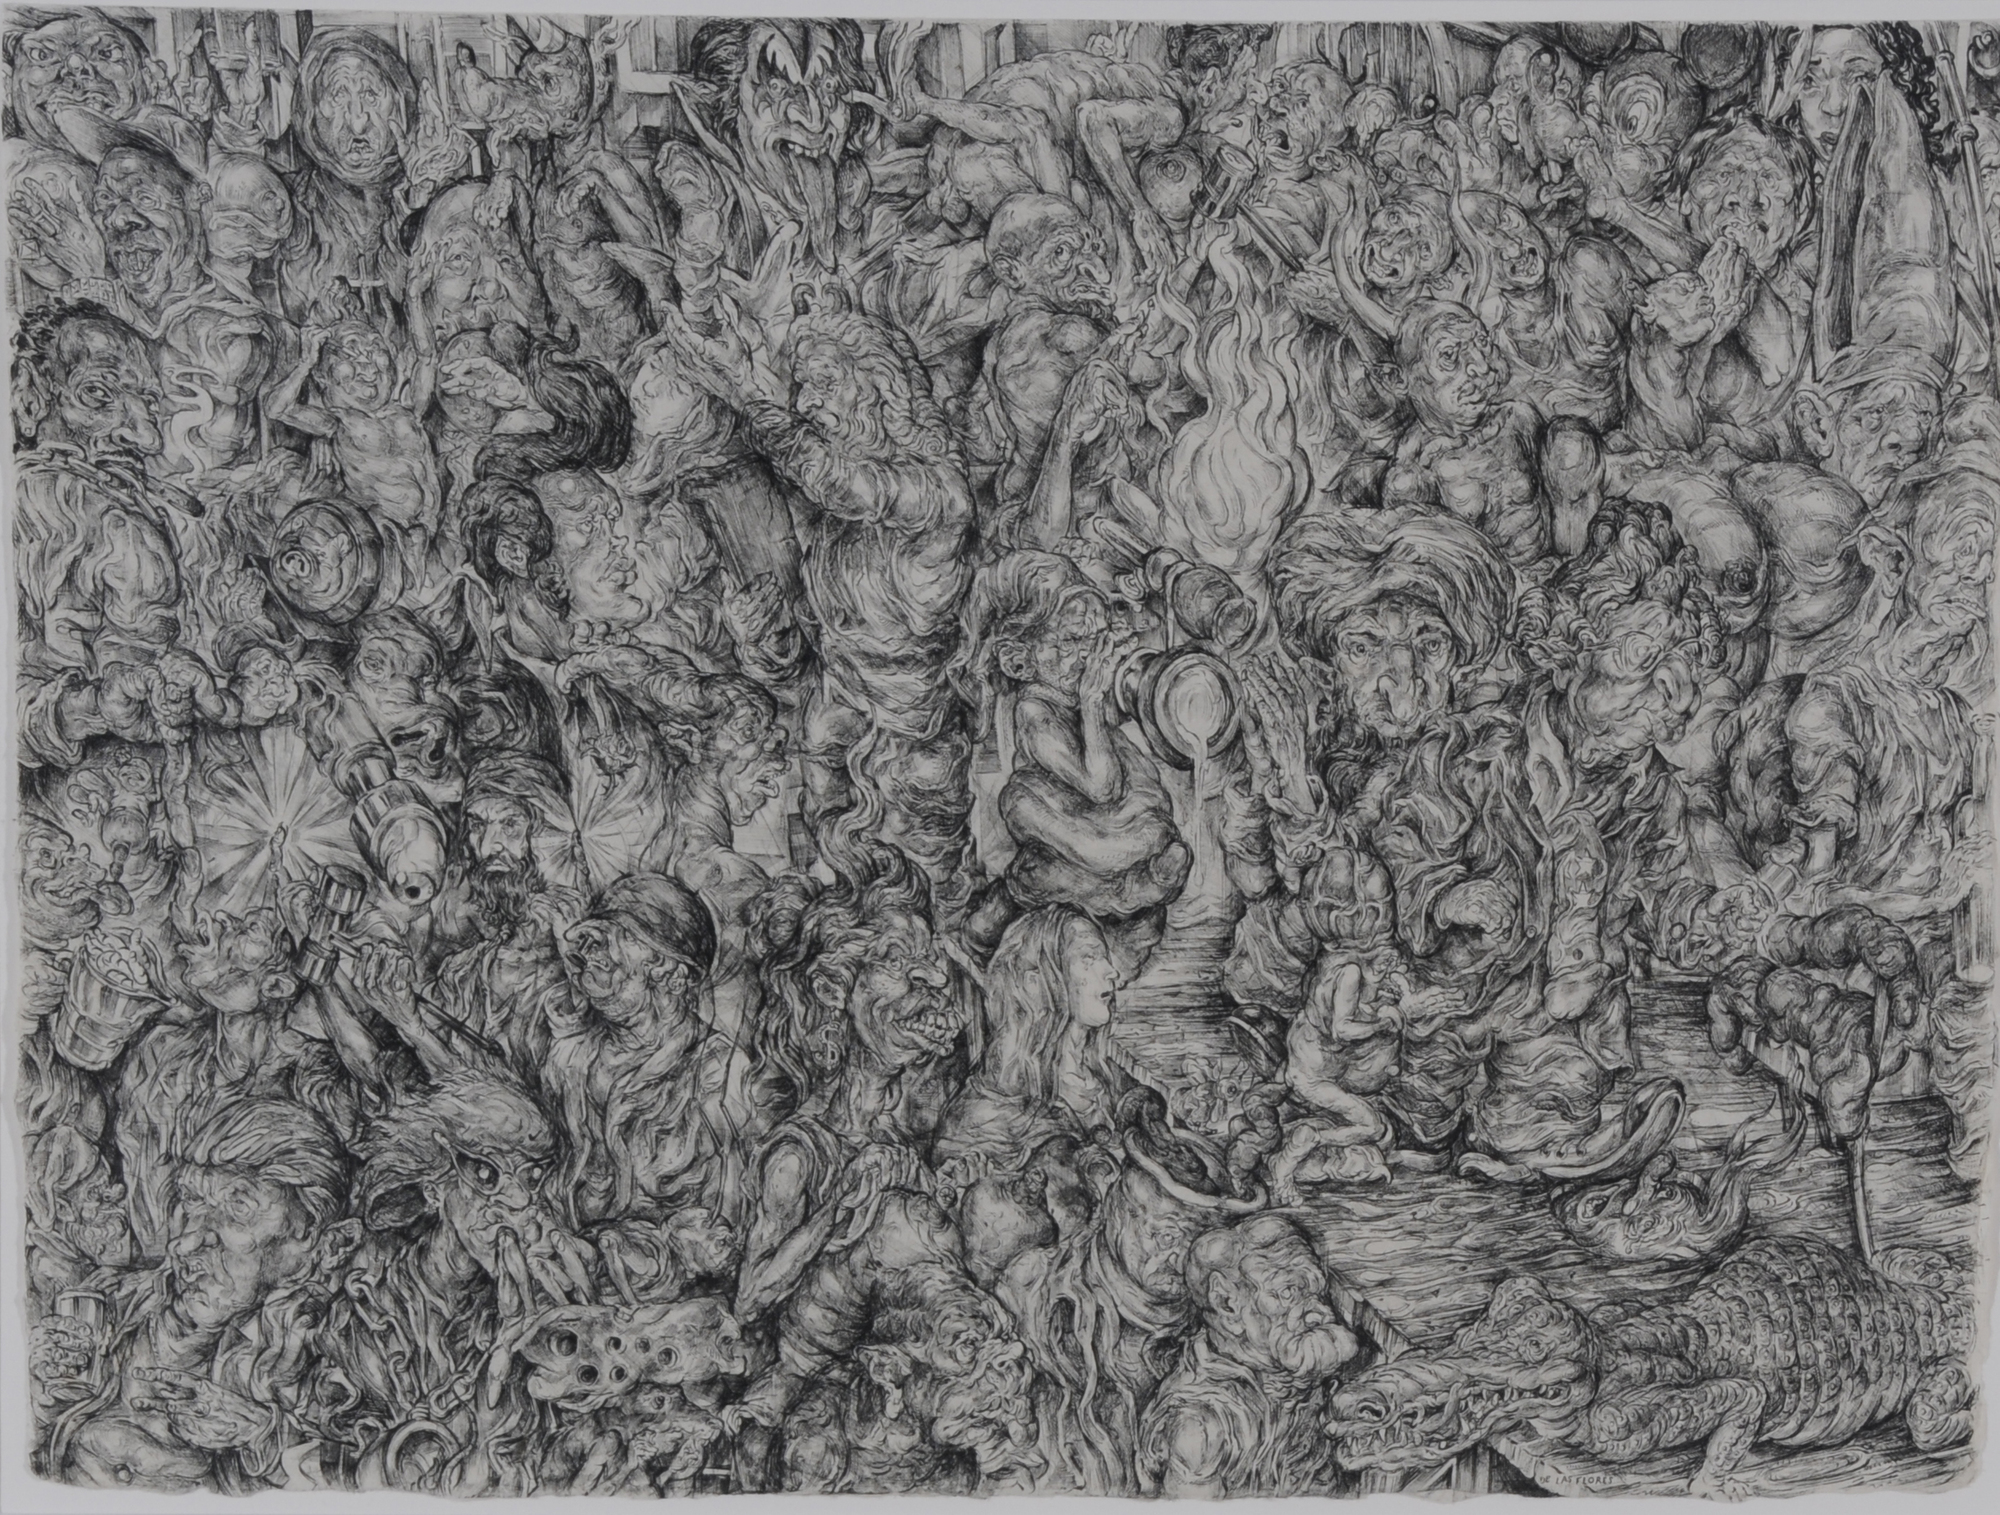 De Las Flores Oscar, 3 drawings: Diptych. The O So Sweet Birth of Oscar de Las Flores / The Even Sweeter Death of Oscar de Las Flores, 2008; The Ascension of Mama Nanda in the Midst of a Century, 2008; The Rapturous Life, According to Good Old Jerry Springer